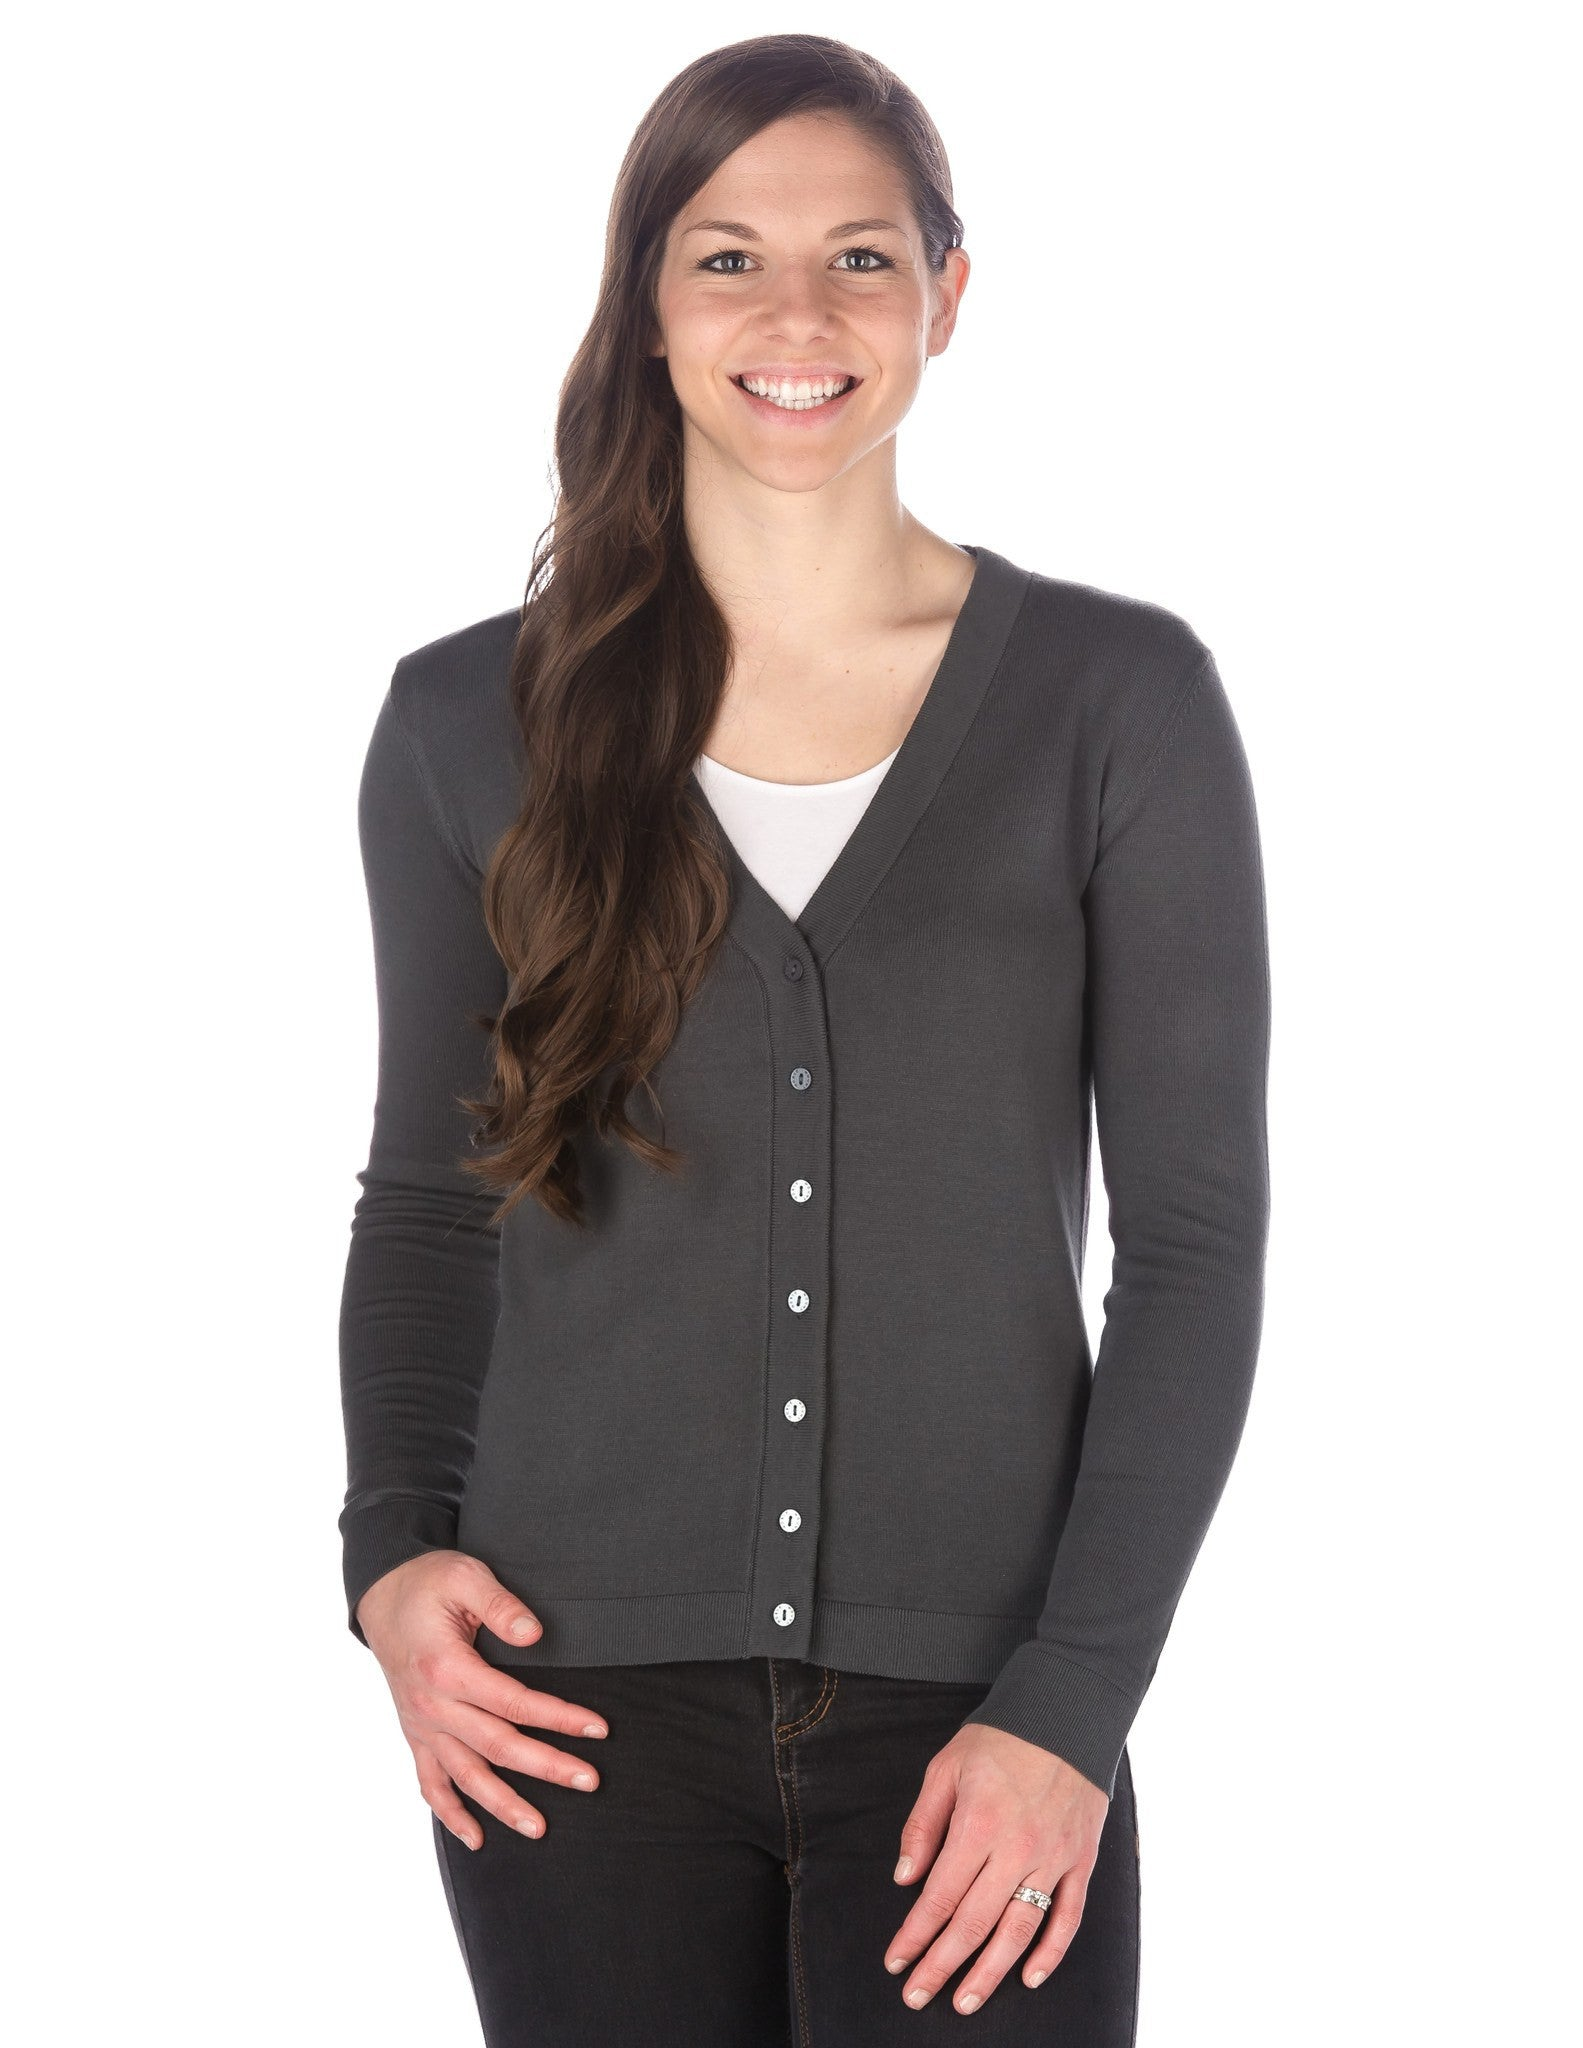 Women's 100% Cotton Cardigan Sweater